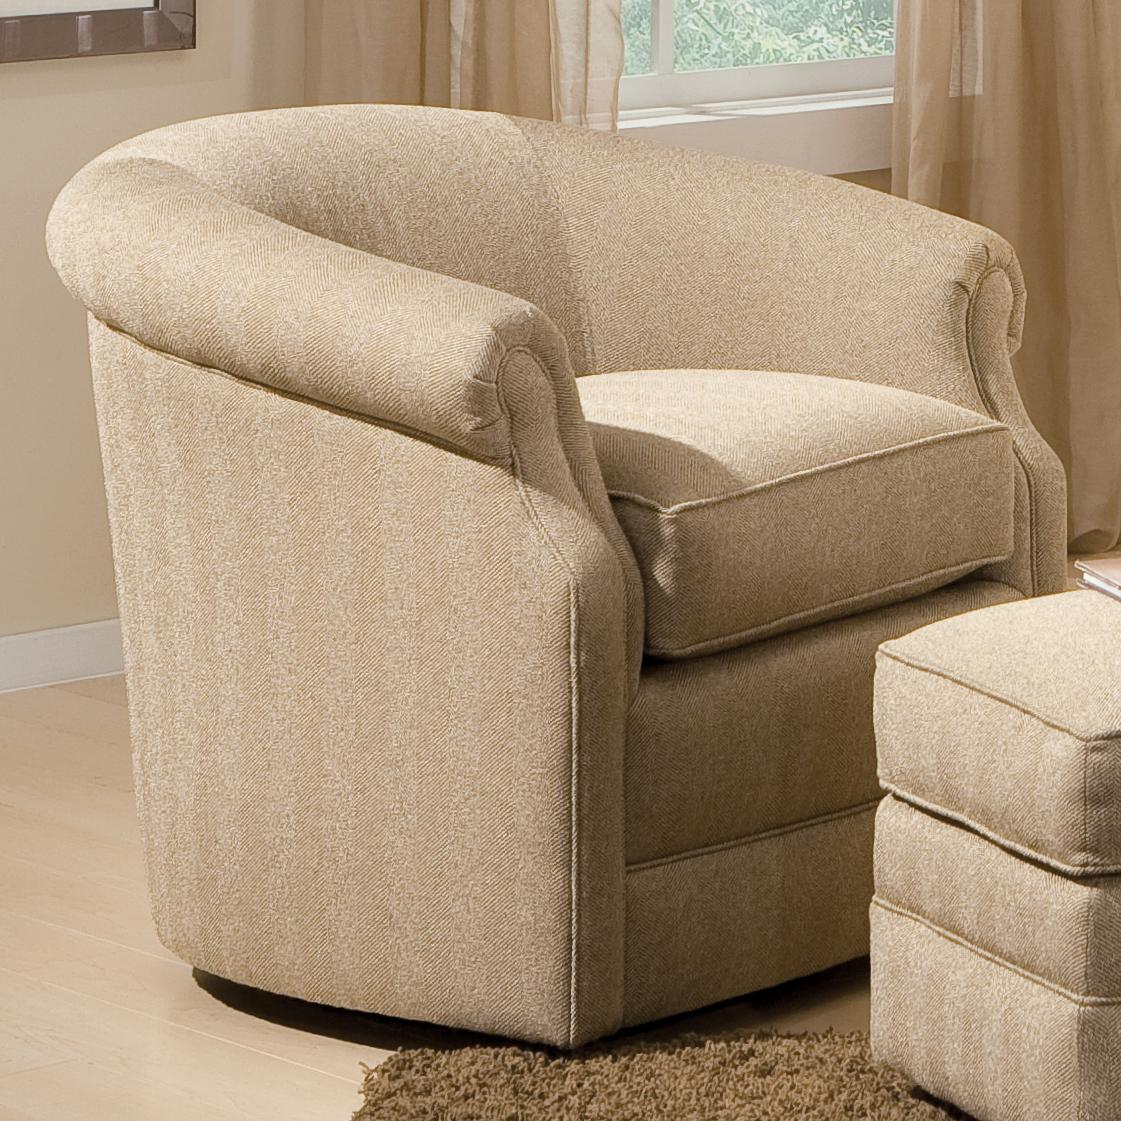 Accent Chairs and Ottomans SB Barrel Swivel Chair by Smith Brothers at Mueller Furniture